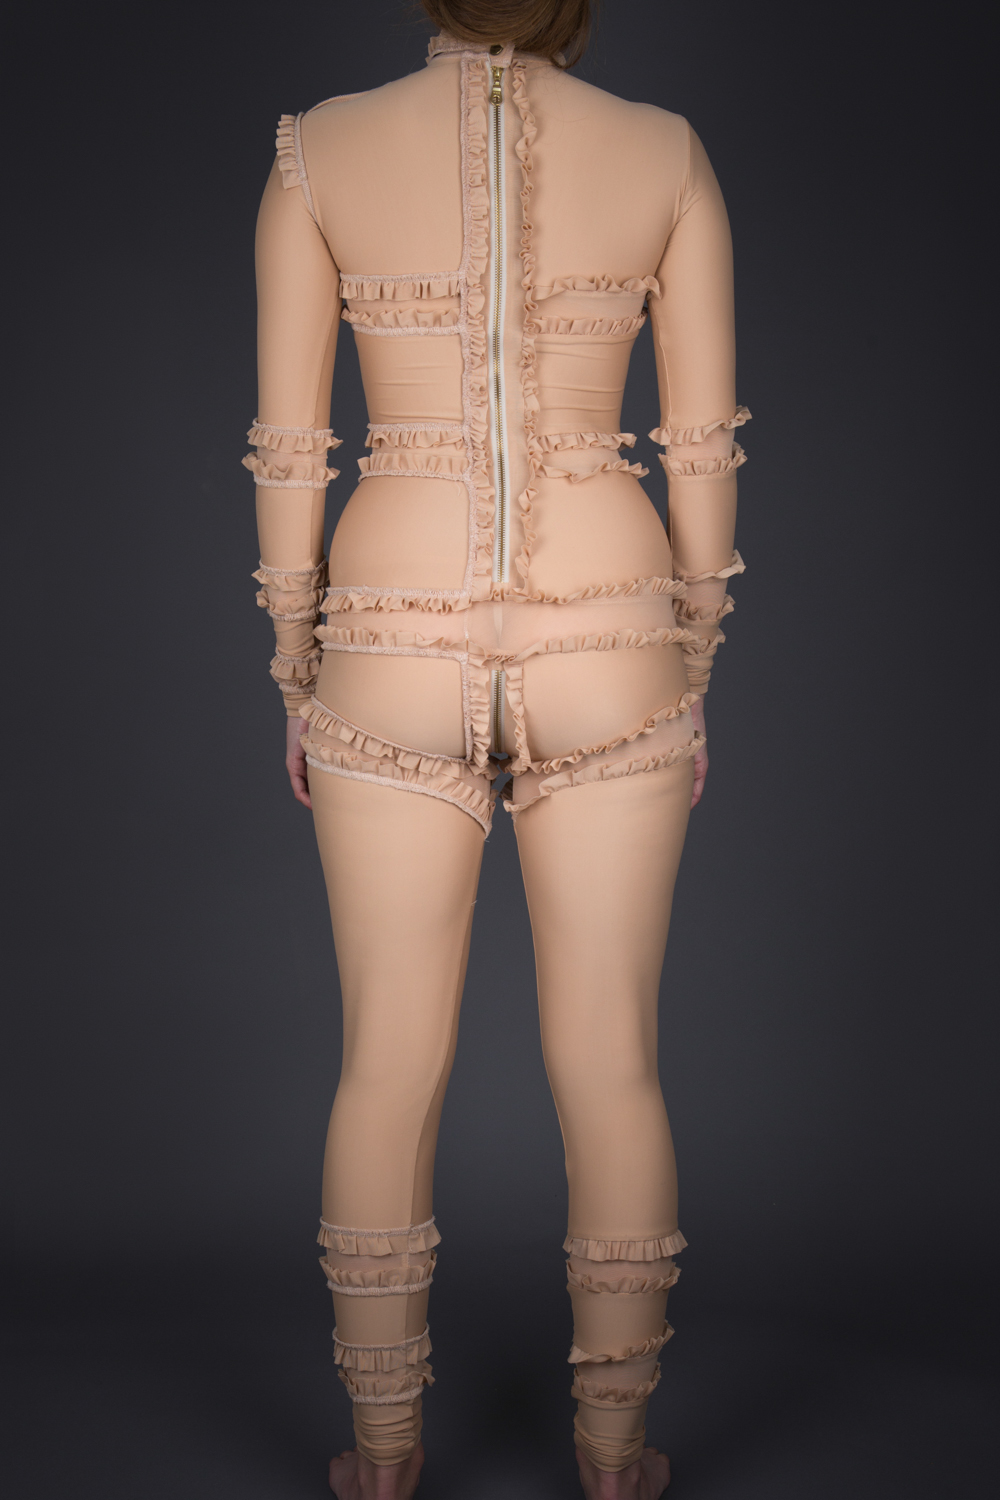 'Immodesty' Ruffled Jumpsuit by Rachel Freire, 2010, UK. The Underpinnings Museum. Photography by Tigz Rice.